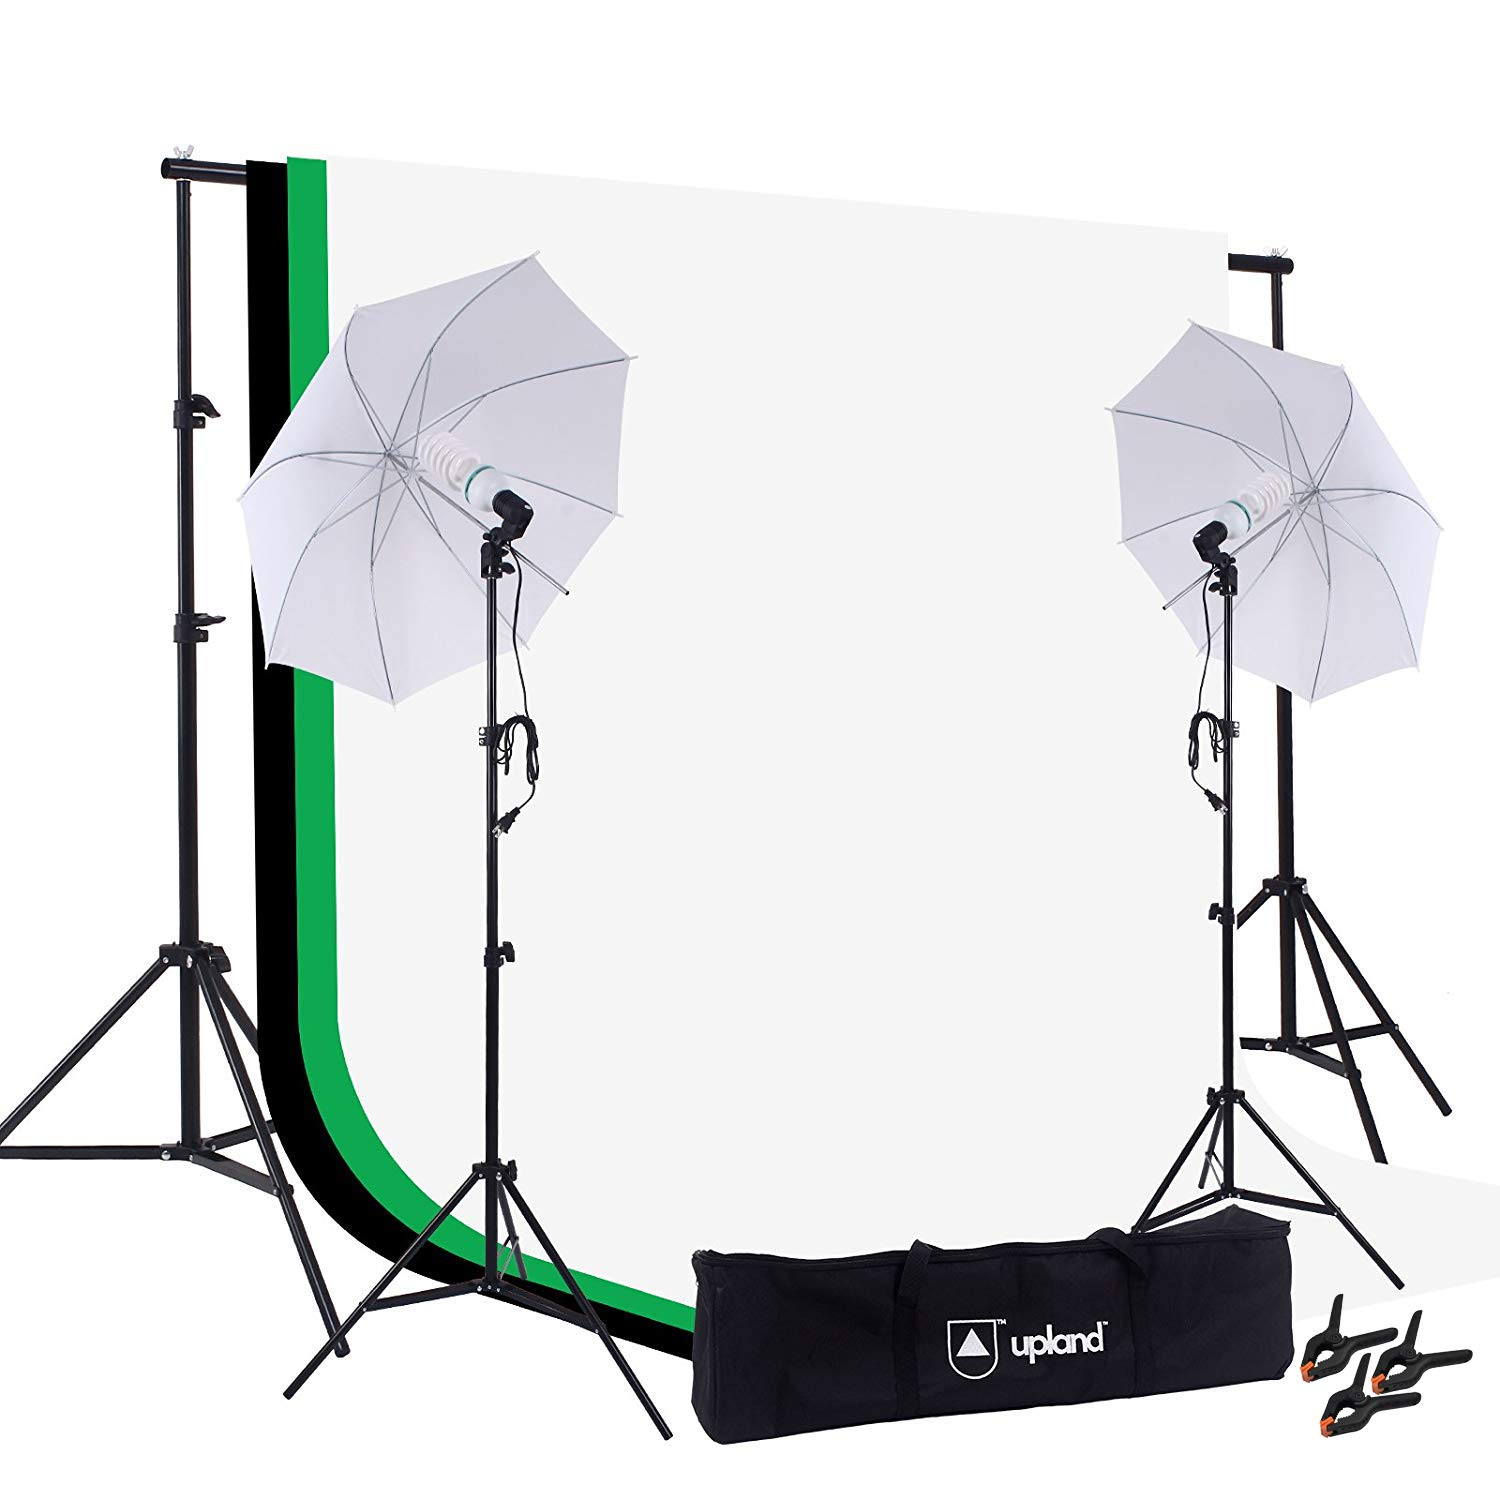 Upland Umbrella Continuous Lighting Kit for Photo, Photography and Video Studio, 2 Daylight Umbrellas (33'') + Backdrop Support Stand (6.6x6.6FT) + 3 Backdrops (5.4x10FT) by Upland